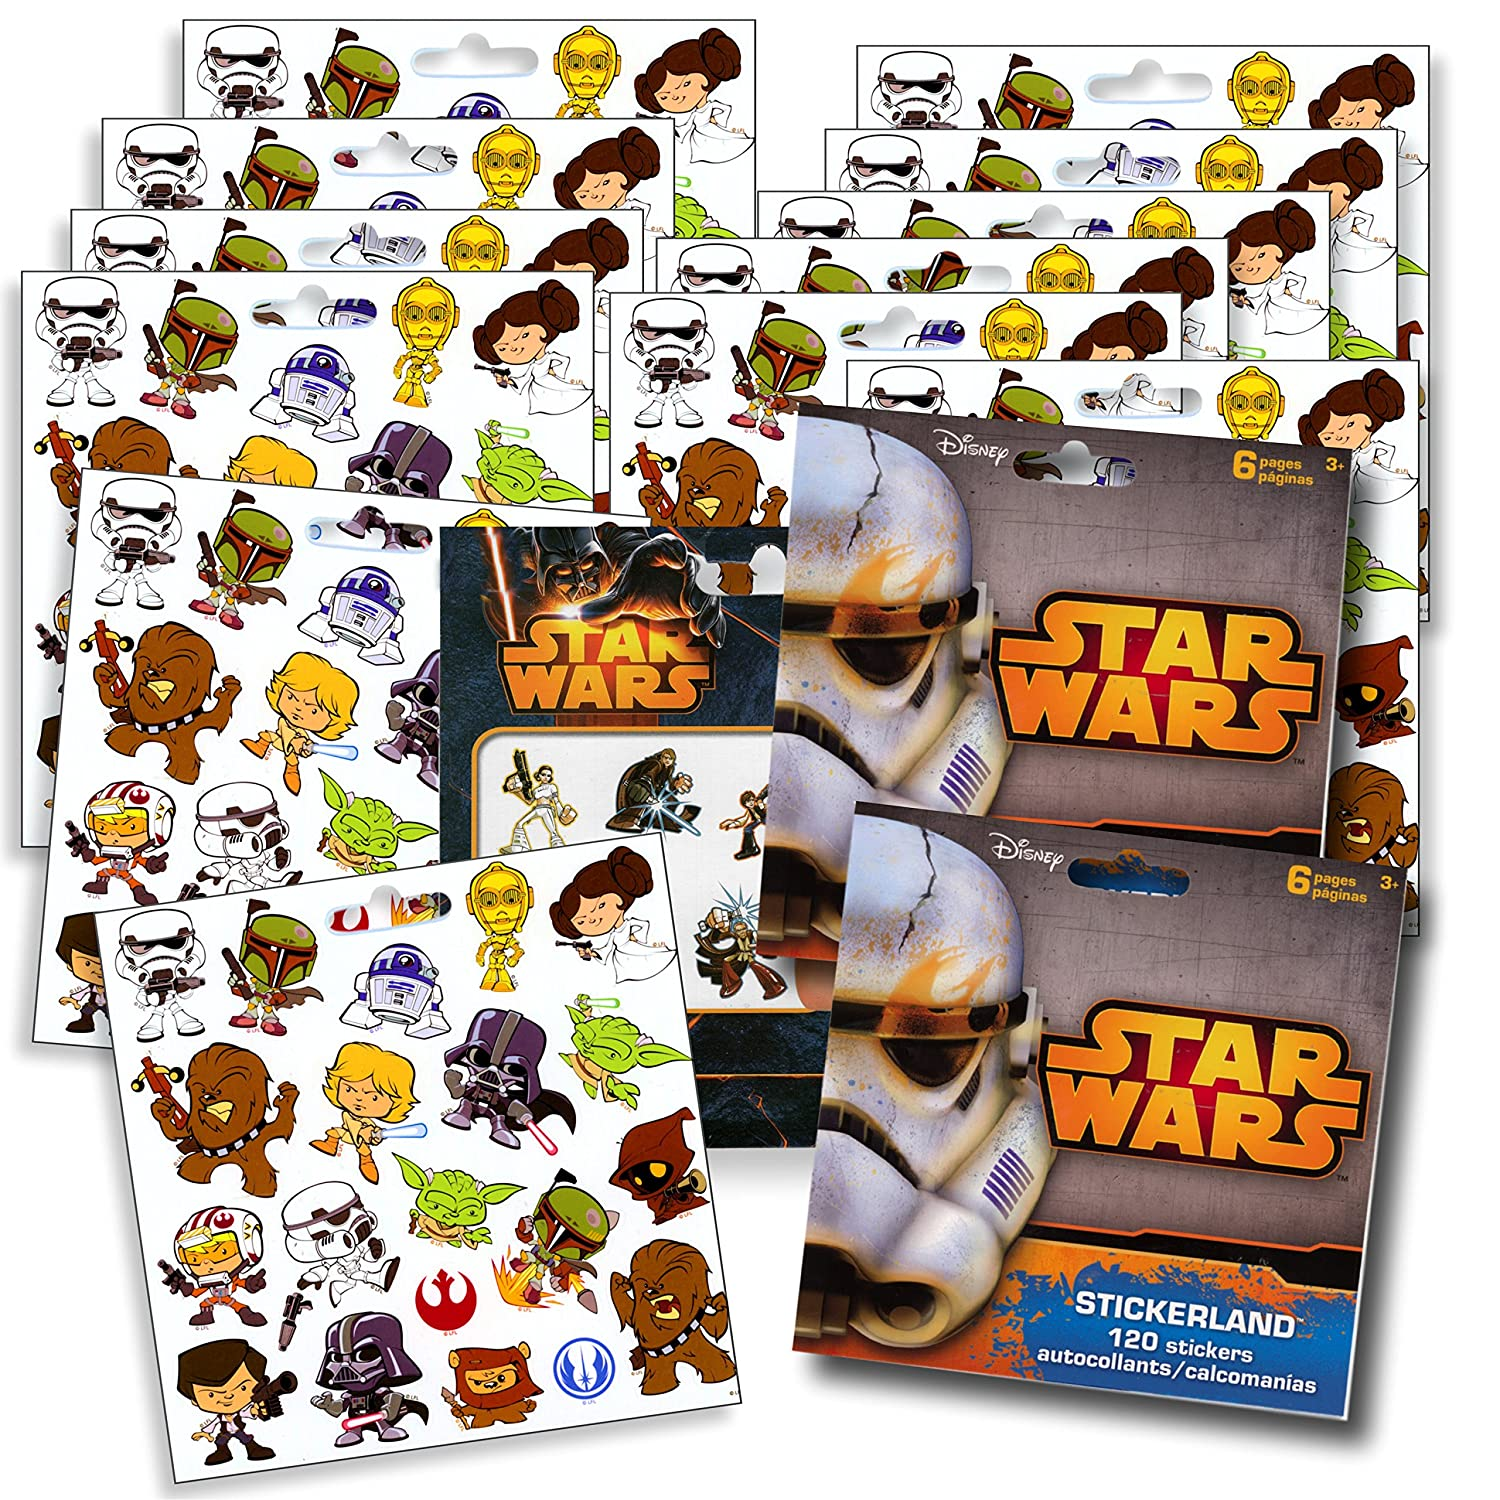 Star Wars Stickers Party Favors ~ Set of 2 Sticker Packs ~ 12 Sheets over 240 Stickers plus Star Wars Tattoos Darth Vader Storm troopers Chewbacca